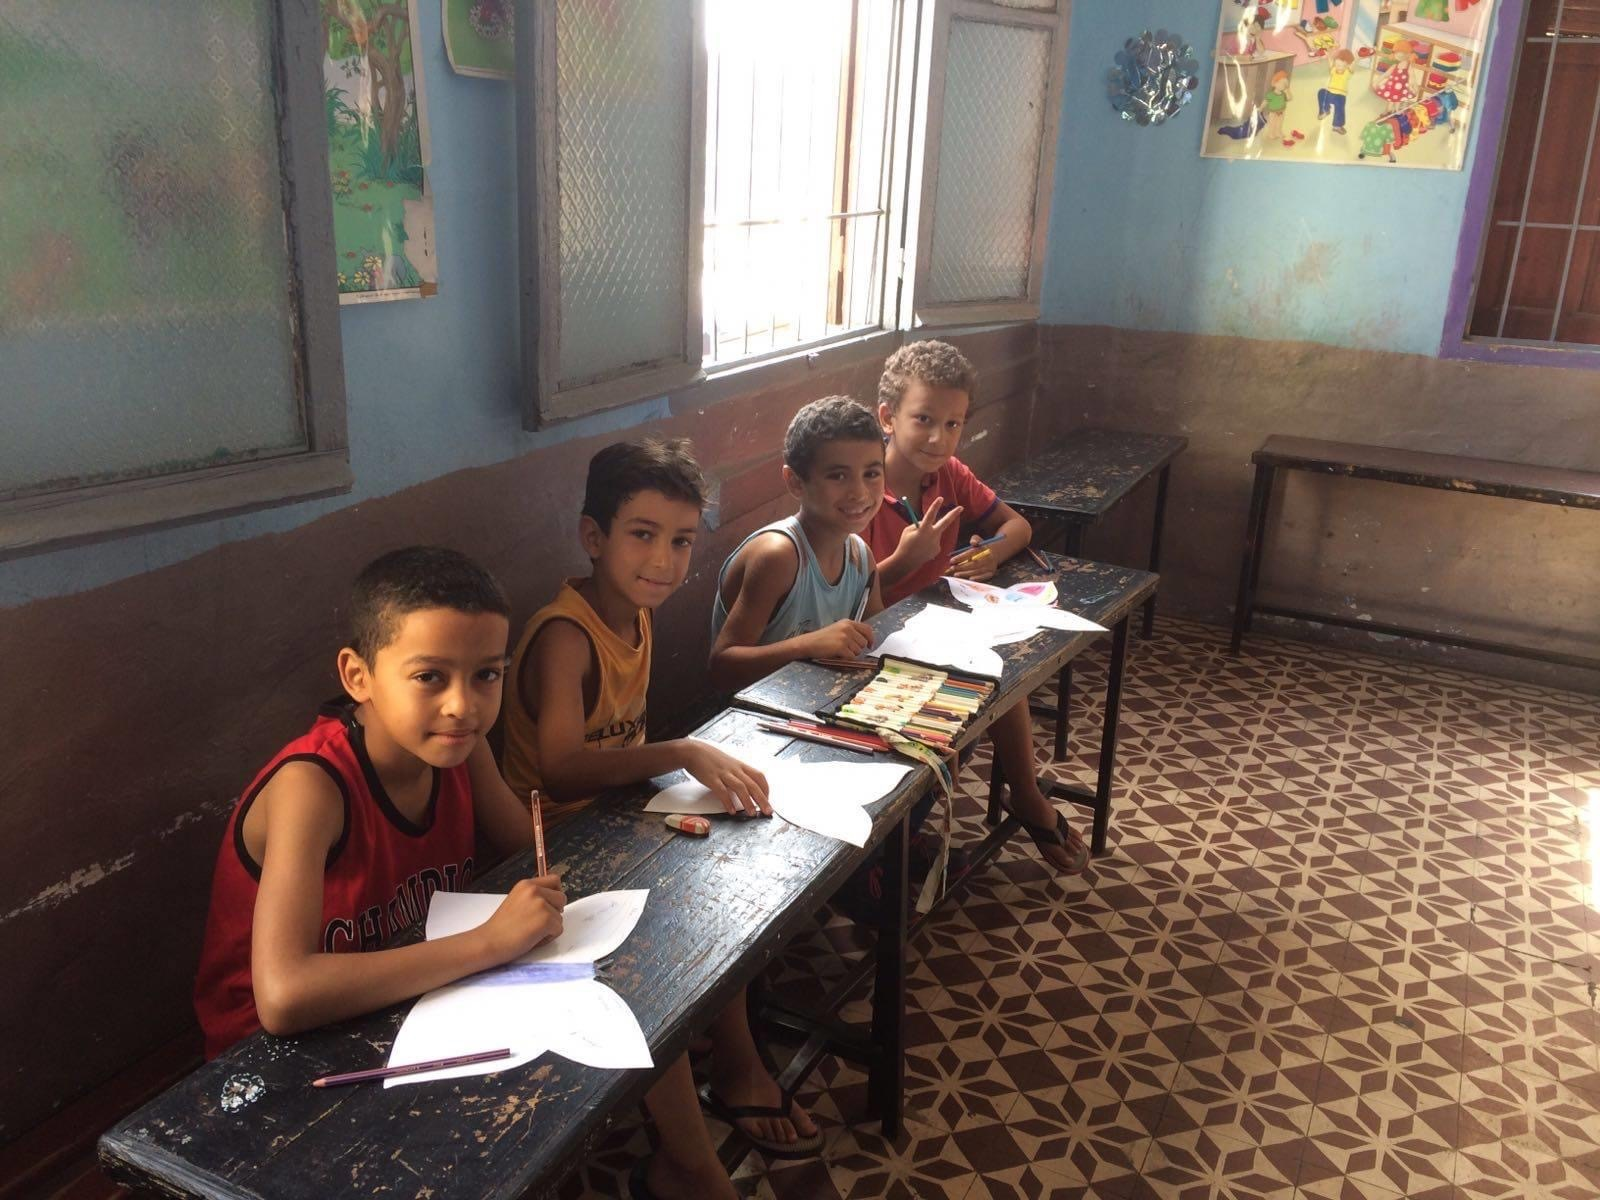 Children from the Derb Sultan neighborhood enjoying extra support classes in the Summer holidays